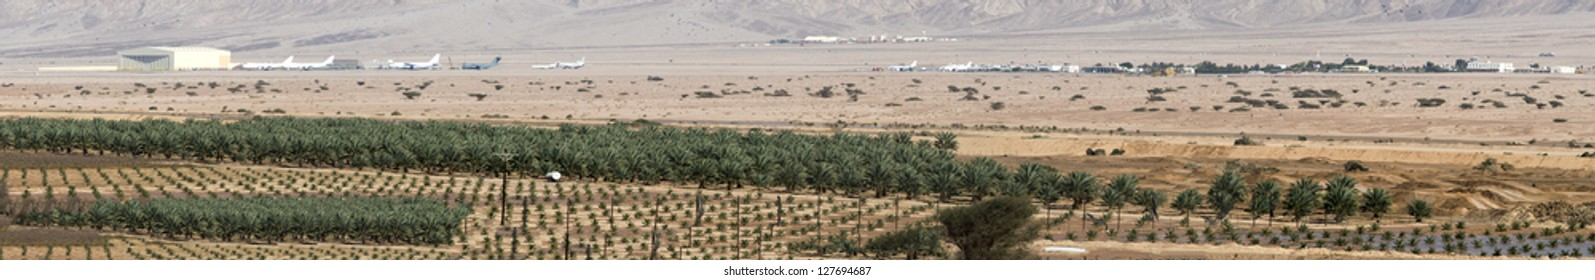 Panoramic view on rural development in the desert valley of Arava (Araba) and international airport of Aqaba near the border of Jordan and Israel